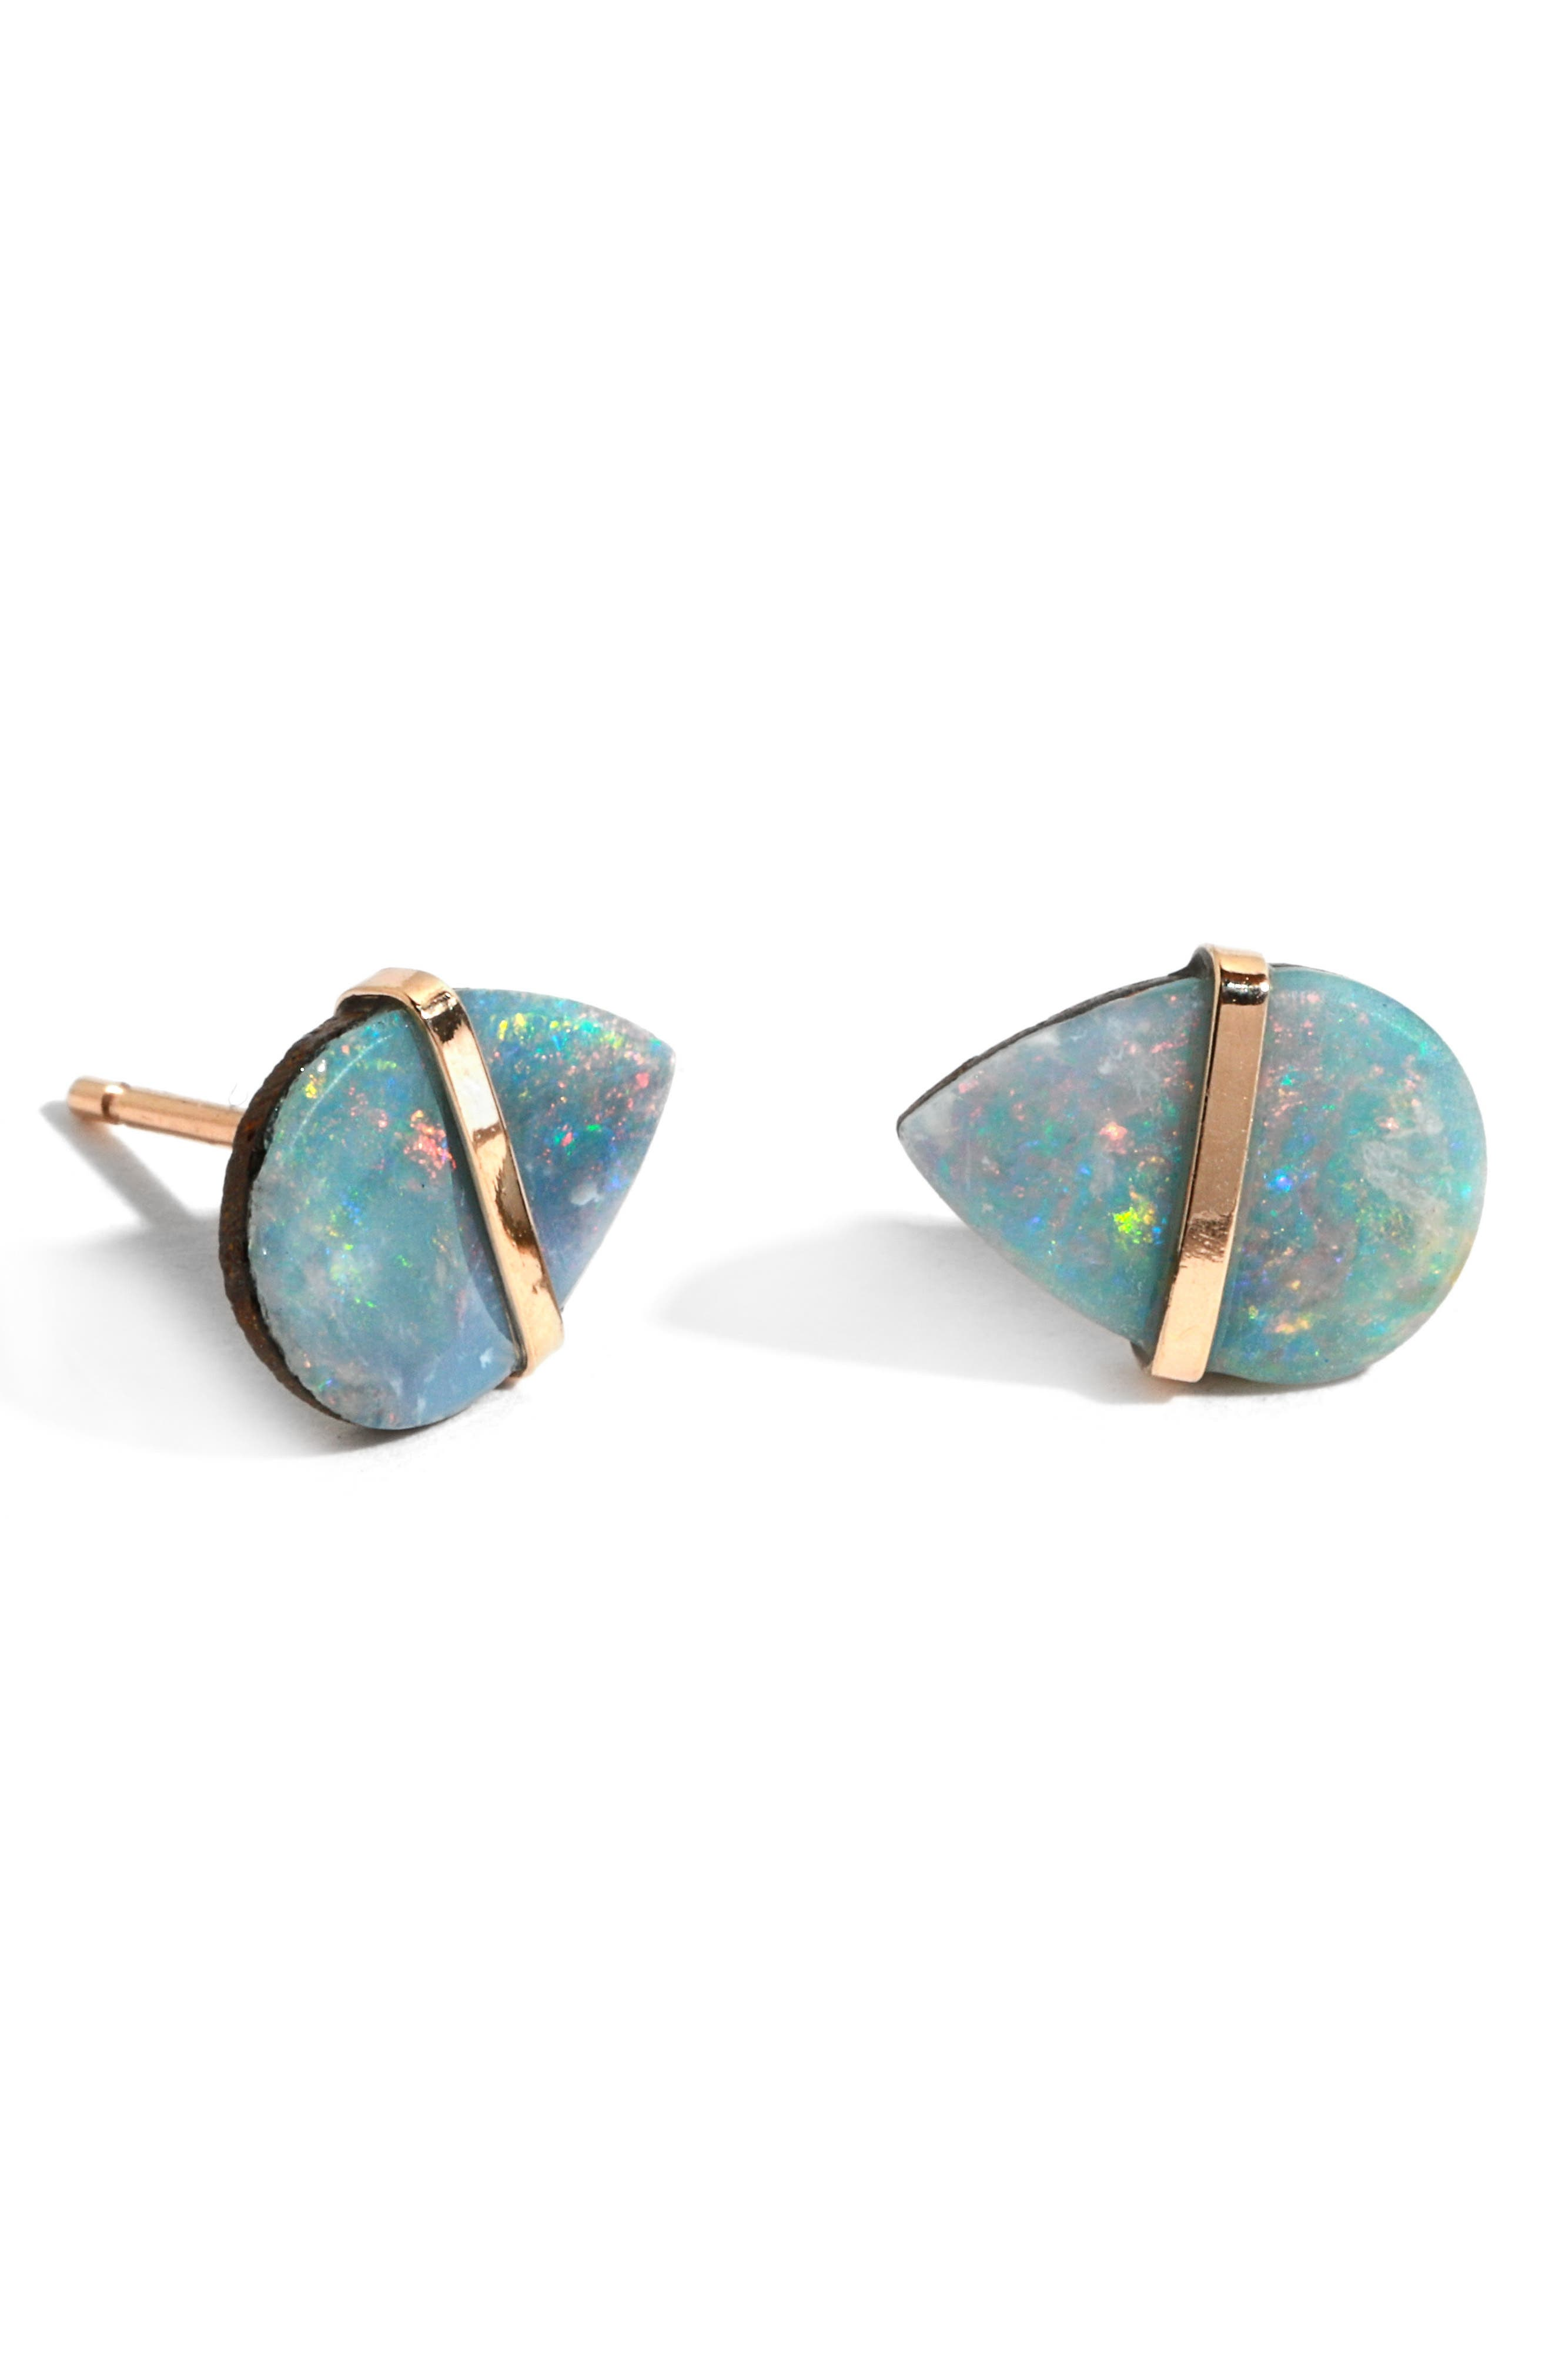 Semiprecious Stone Stud Earrings,                         Main,                         color, YELLOW GOLD